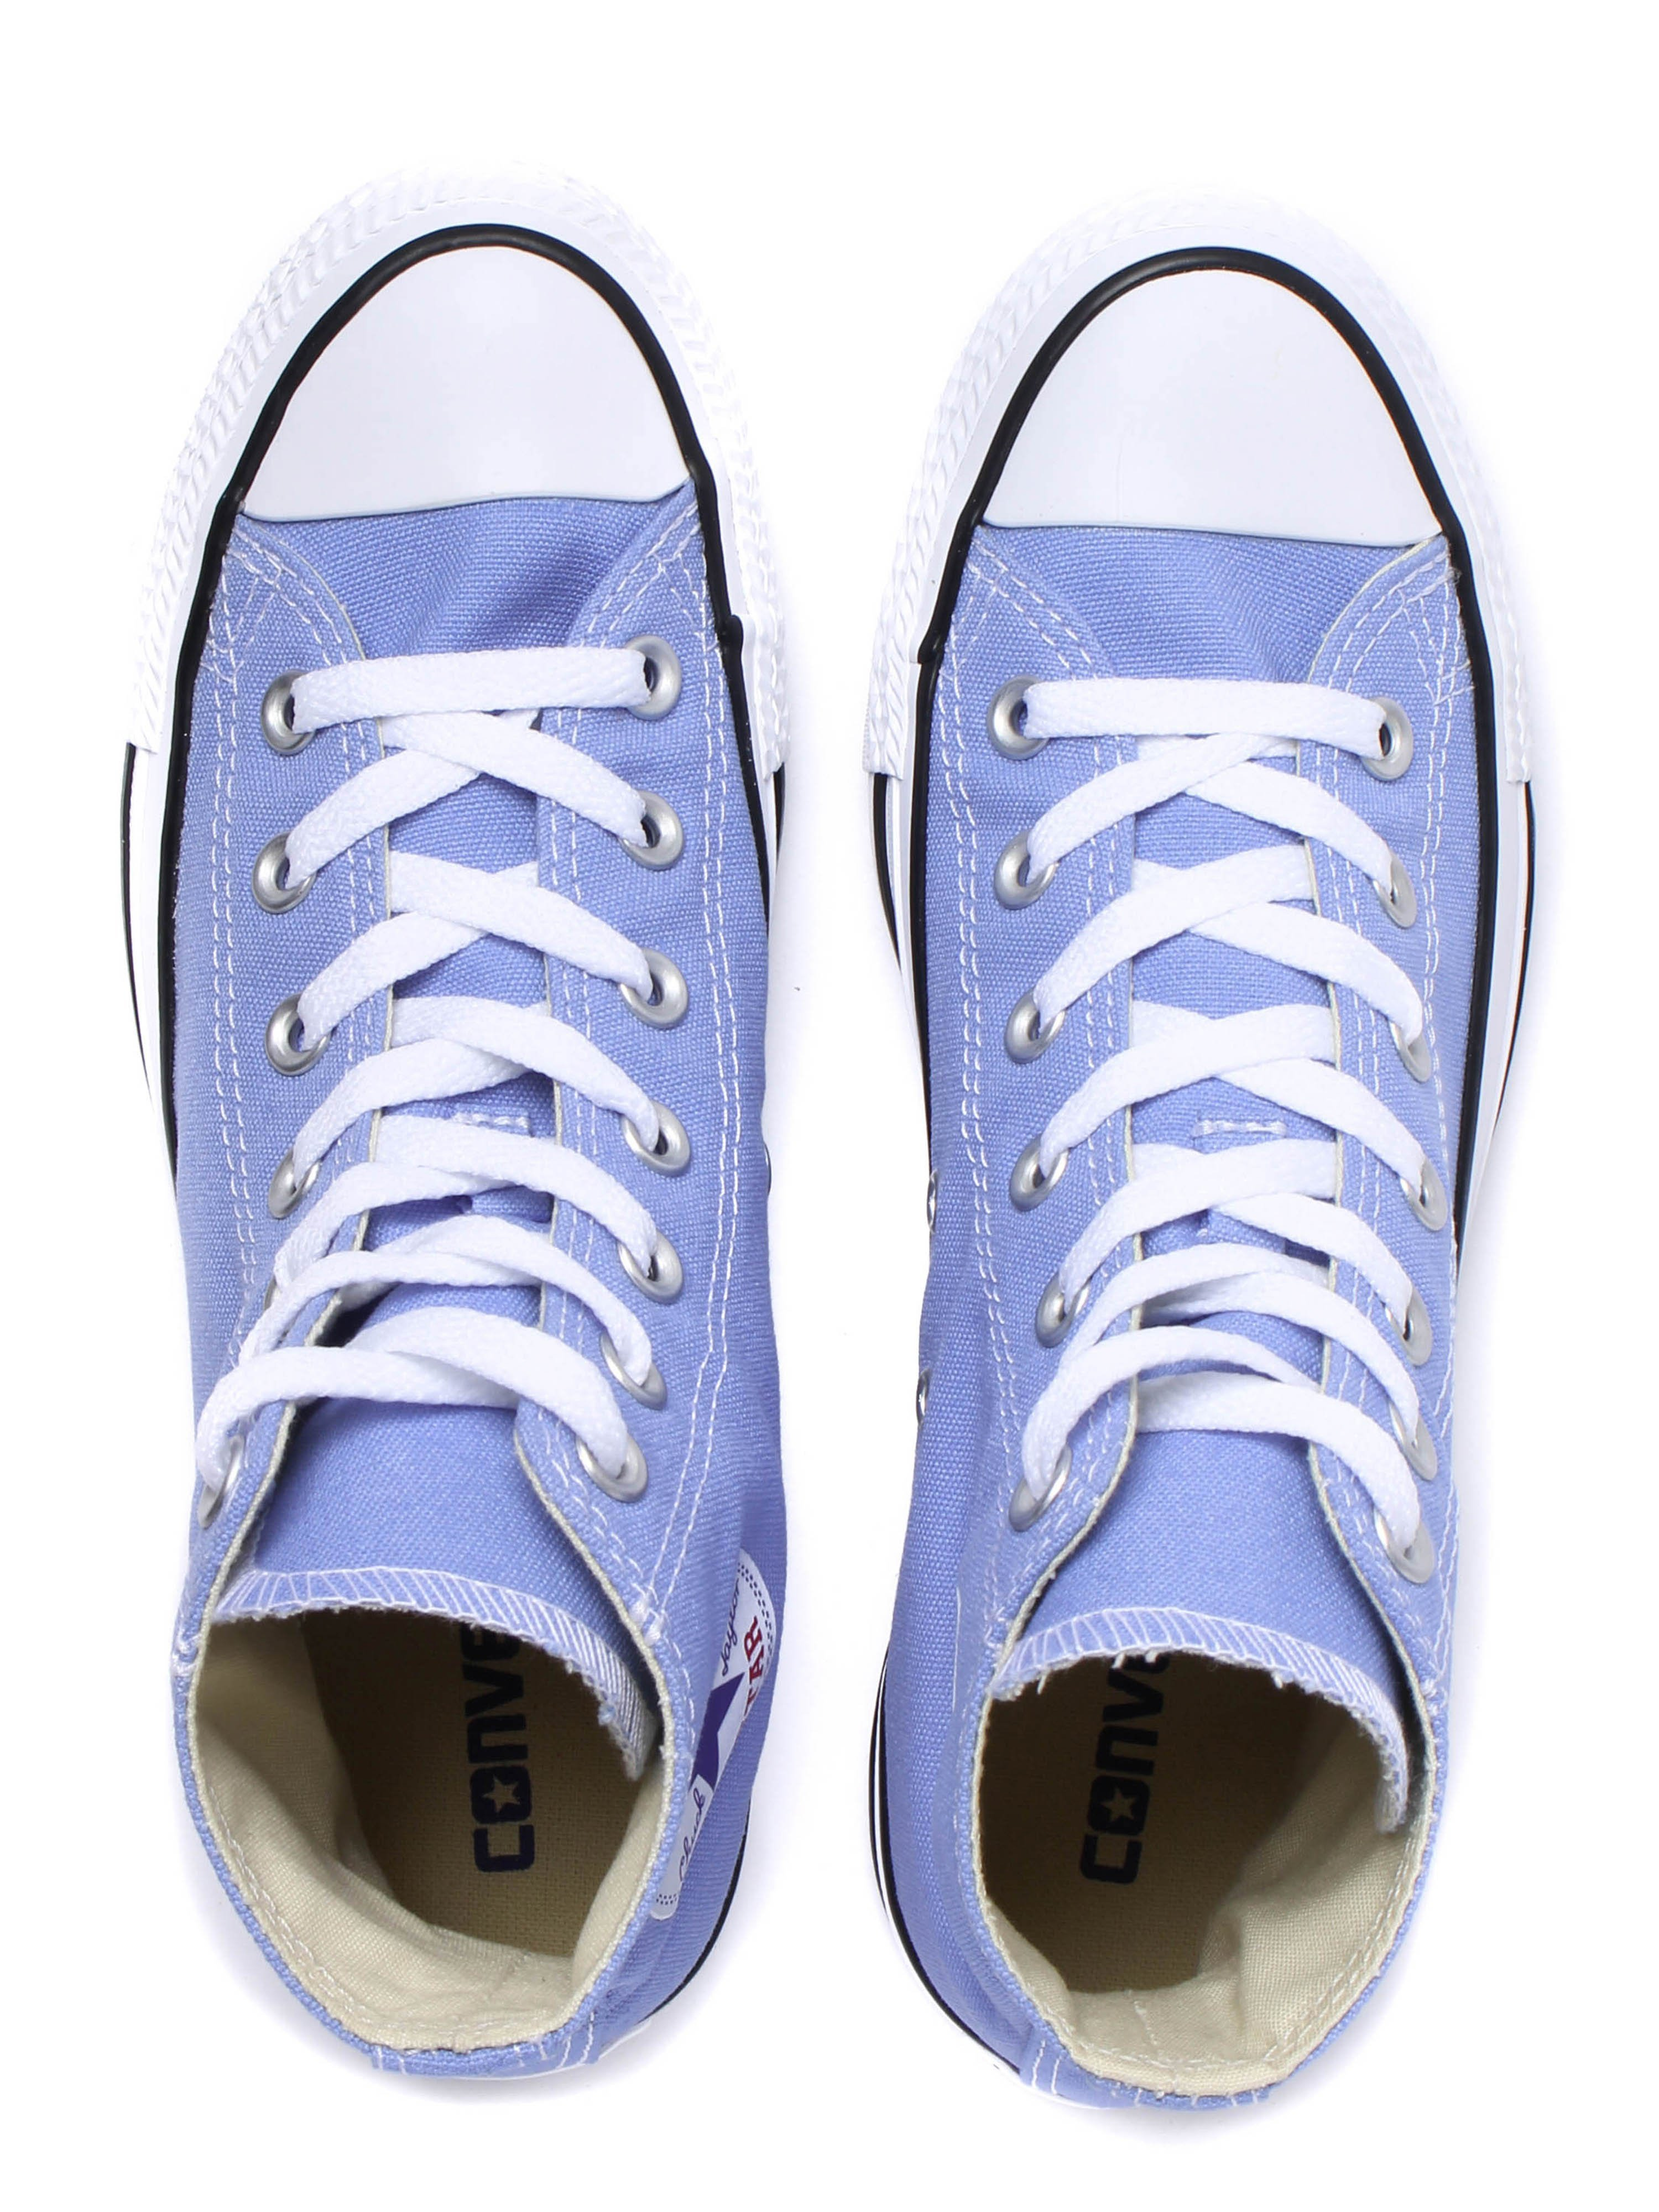 Converse Women's Chuck Taylor All Star Hi Trainers - Pioneer Blue